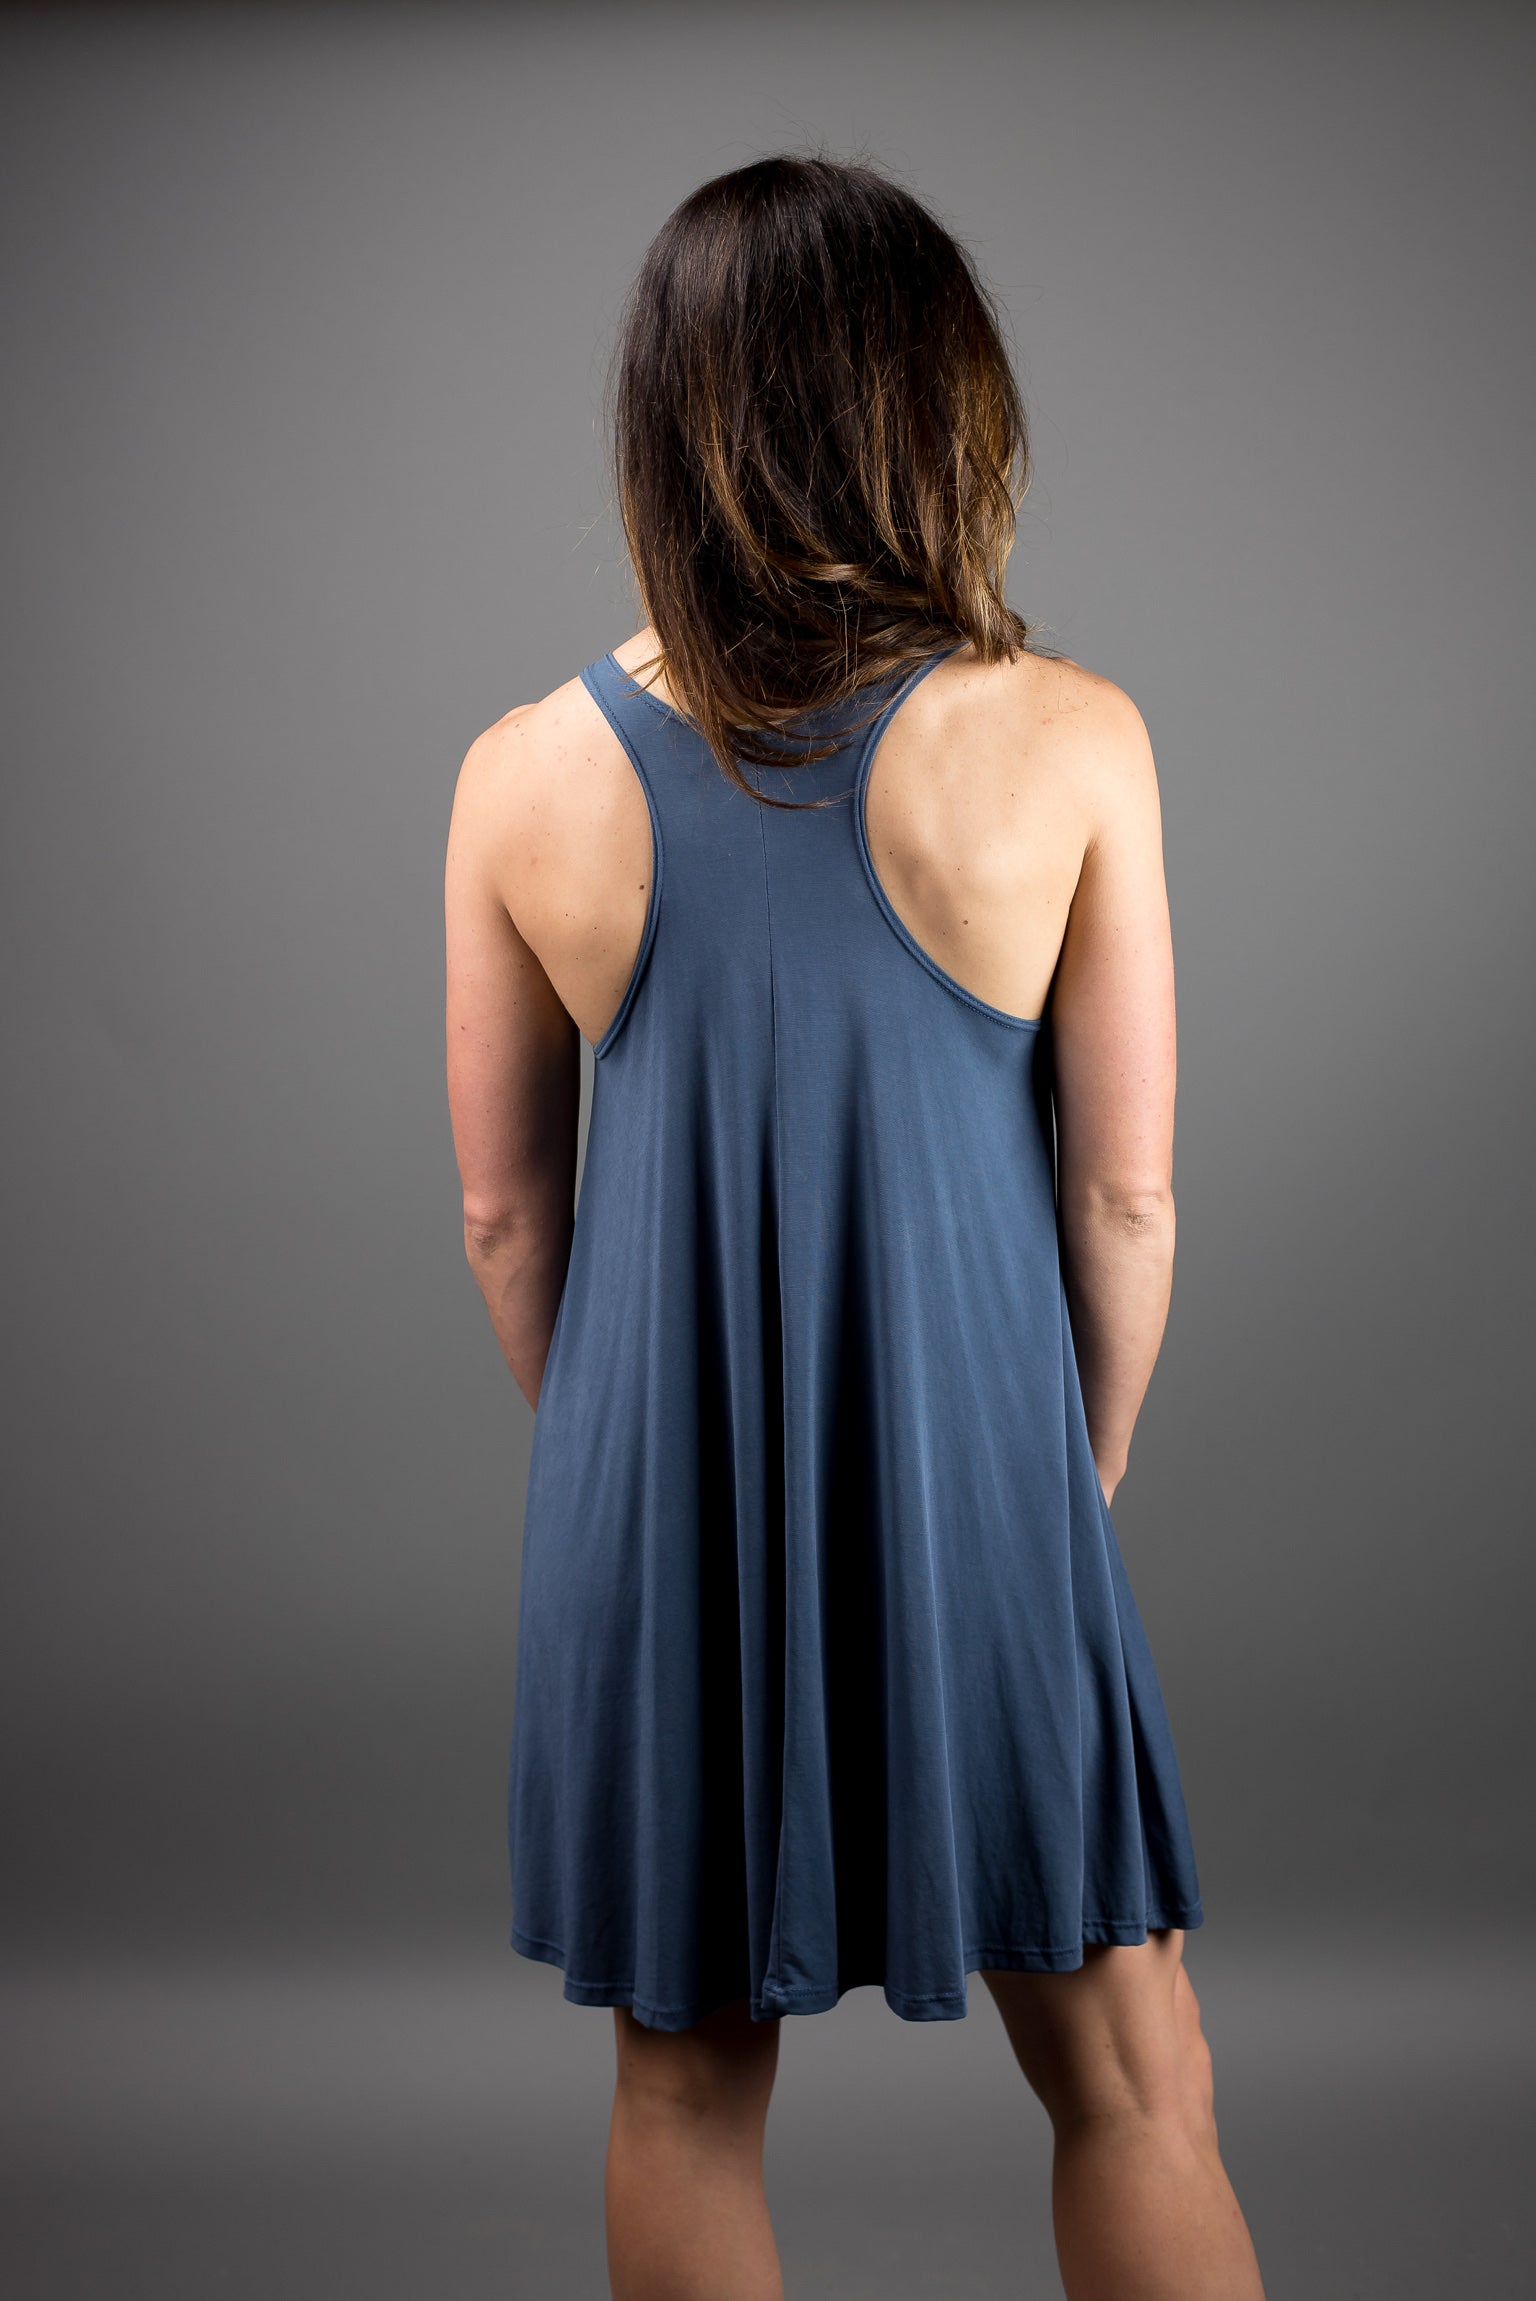 One More Chance Tank Dress